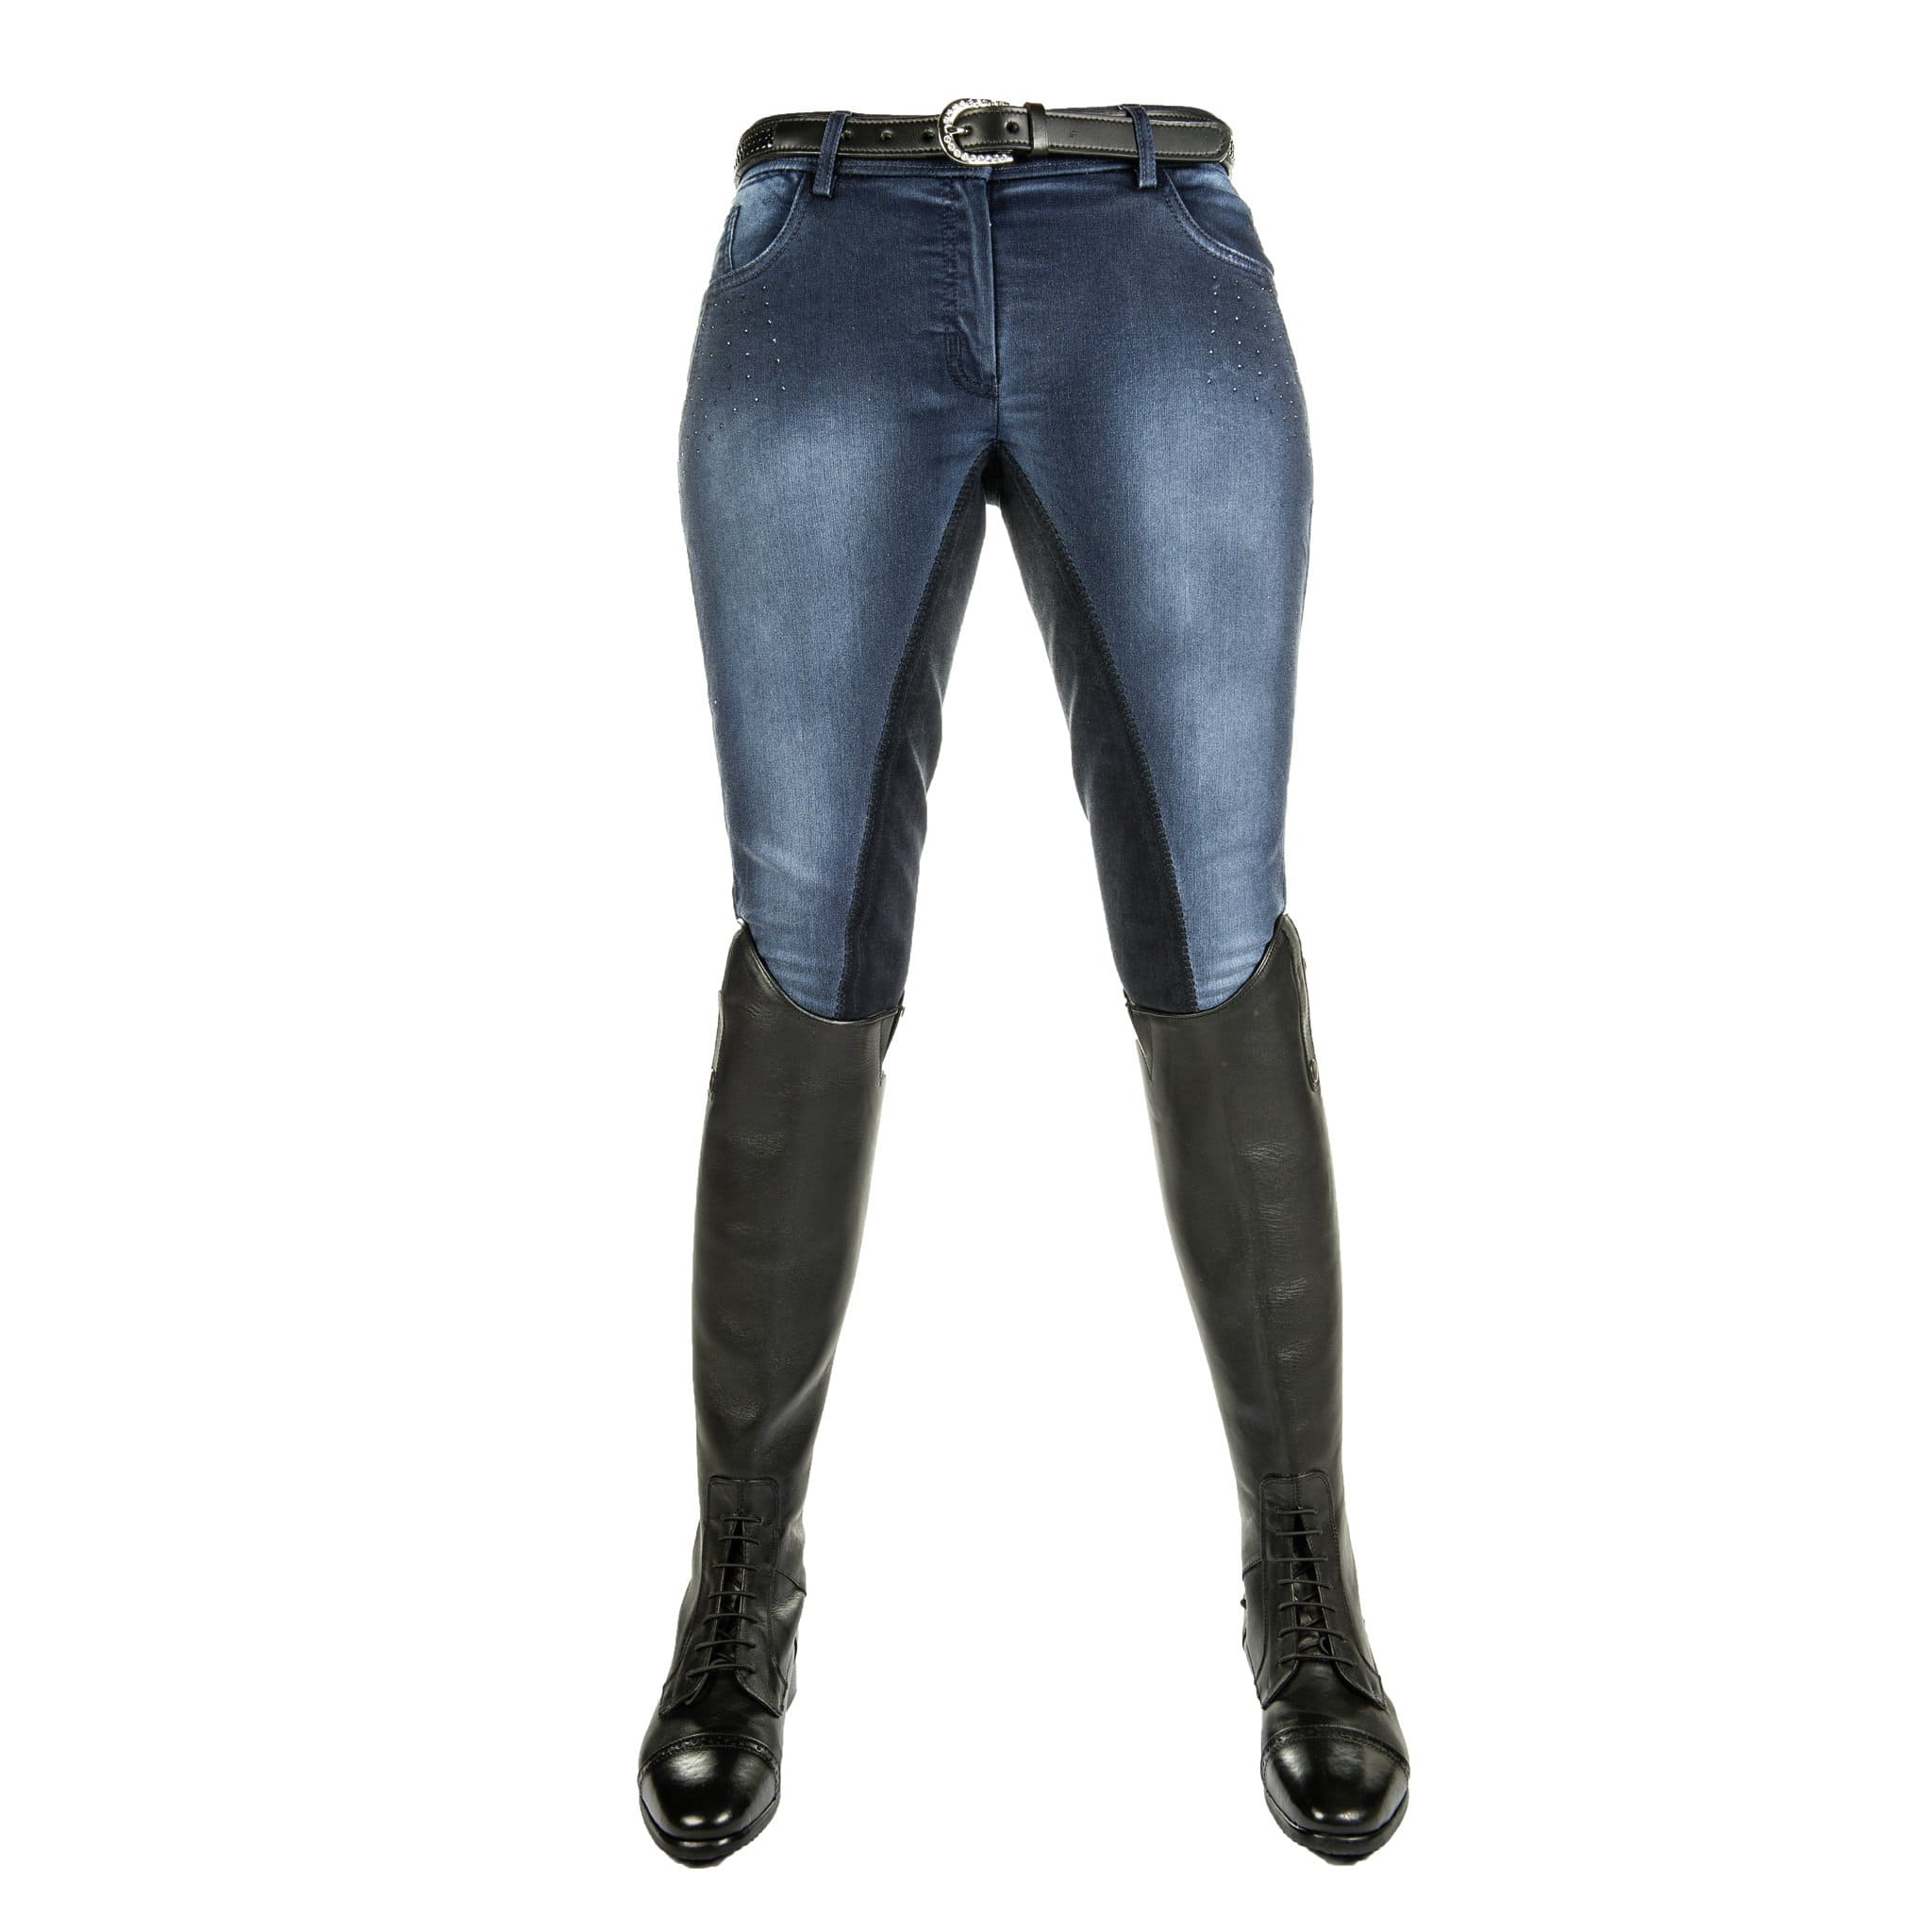 HKM Jeggings Flower Crystal Denim Breeches Front 8199